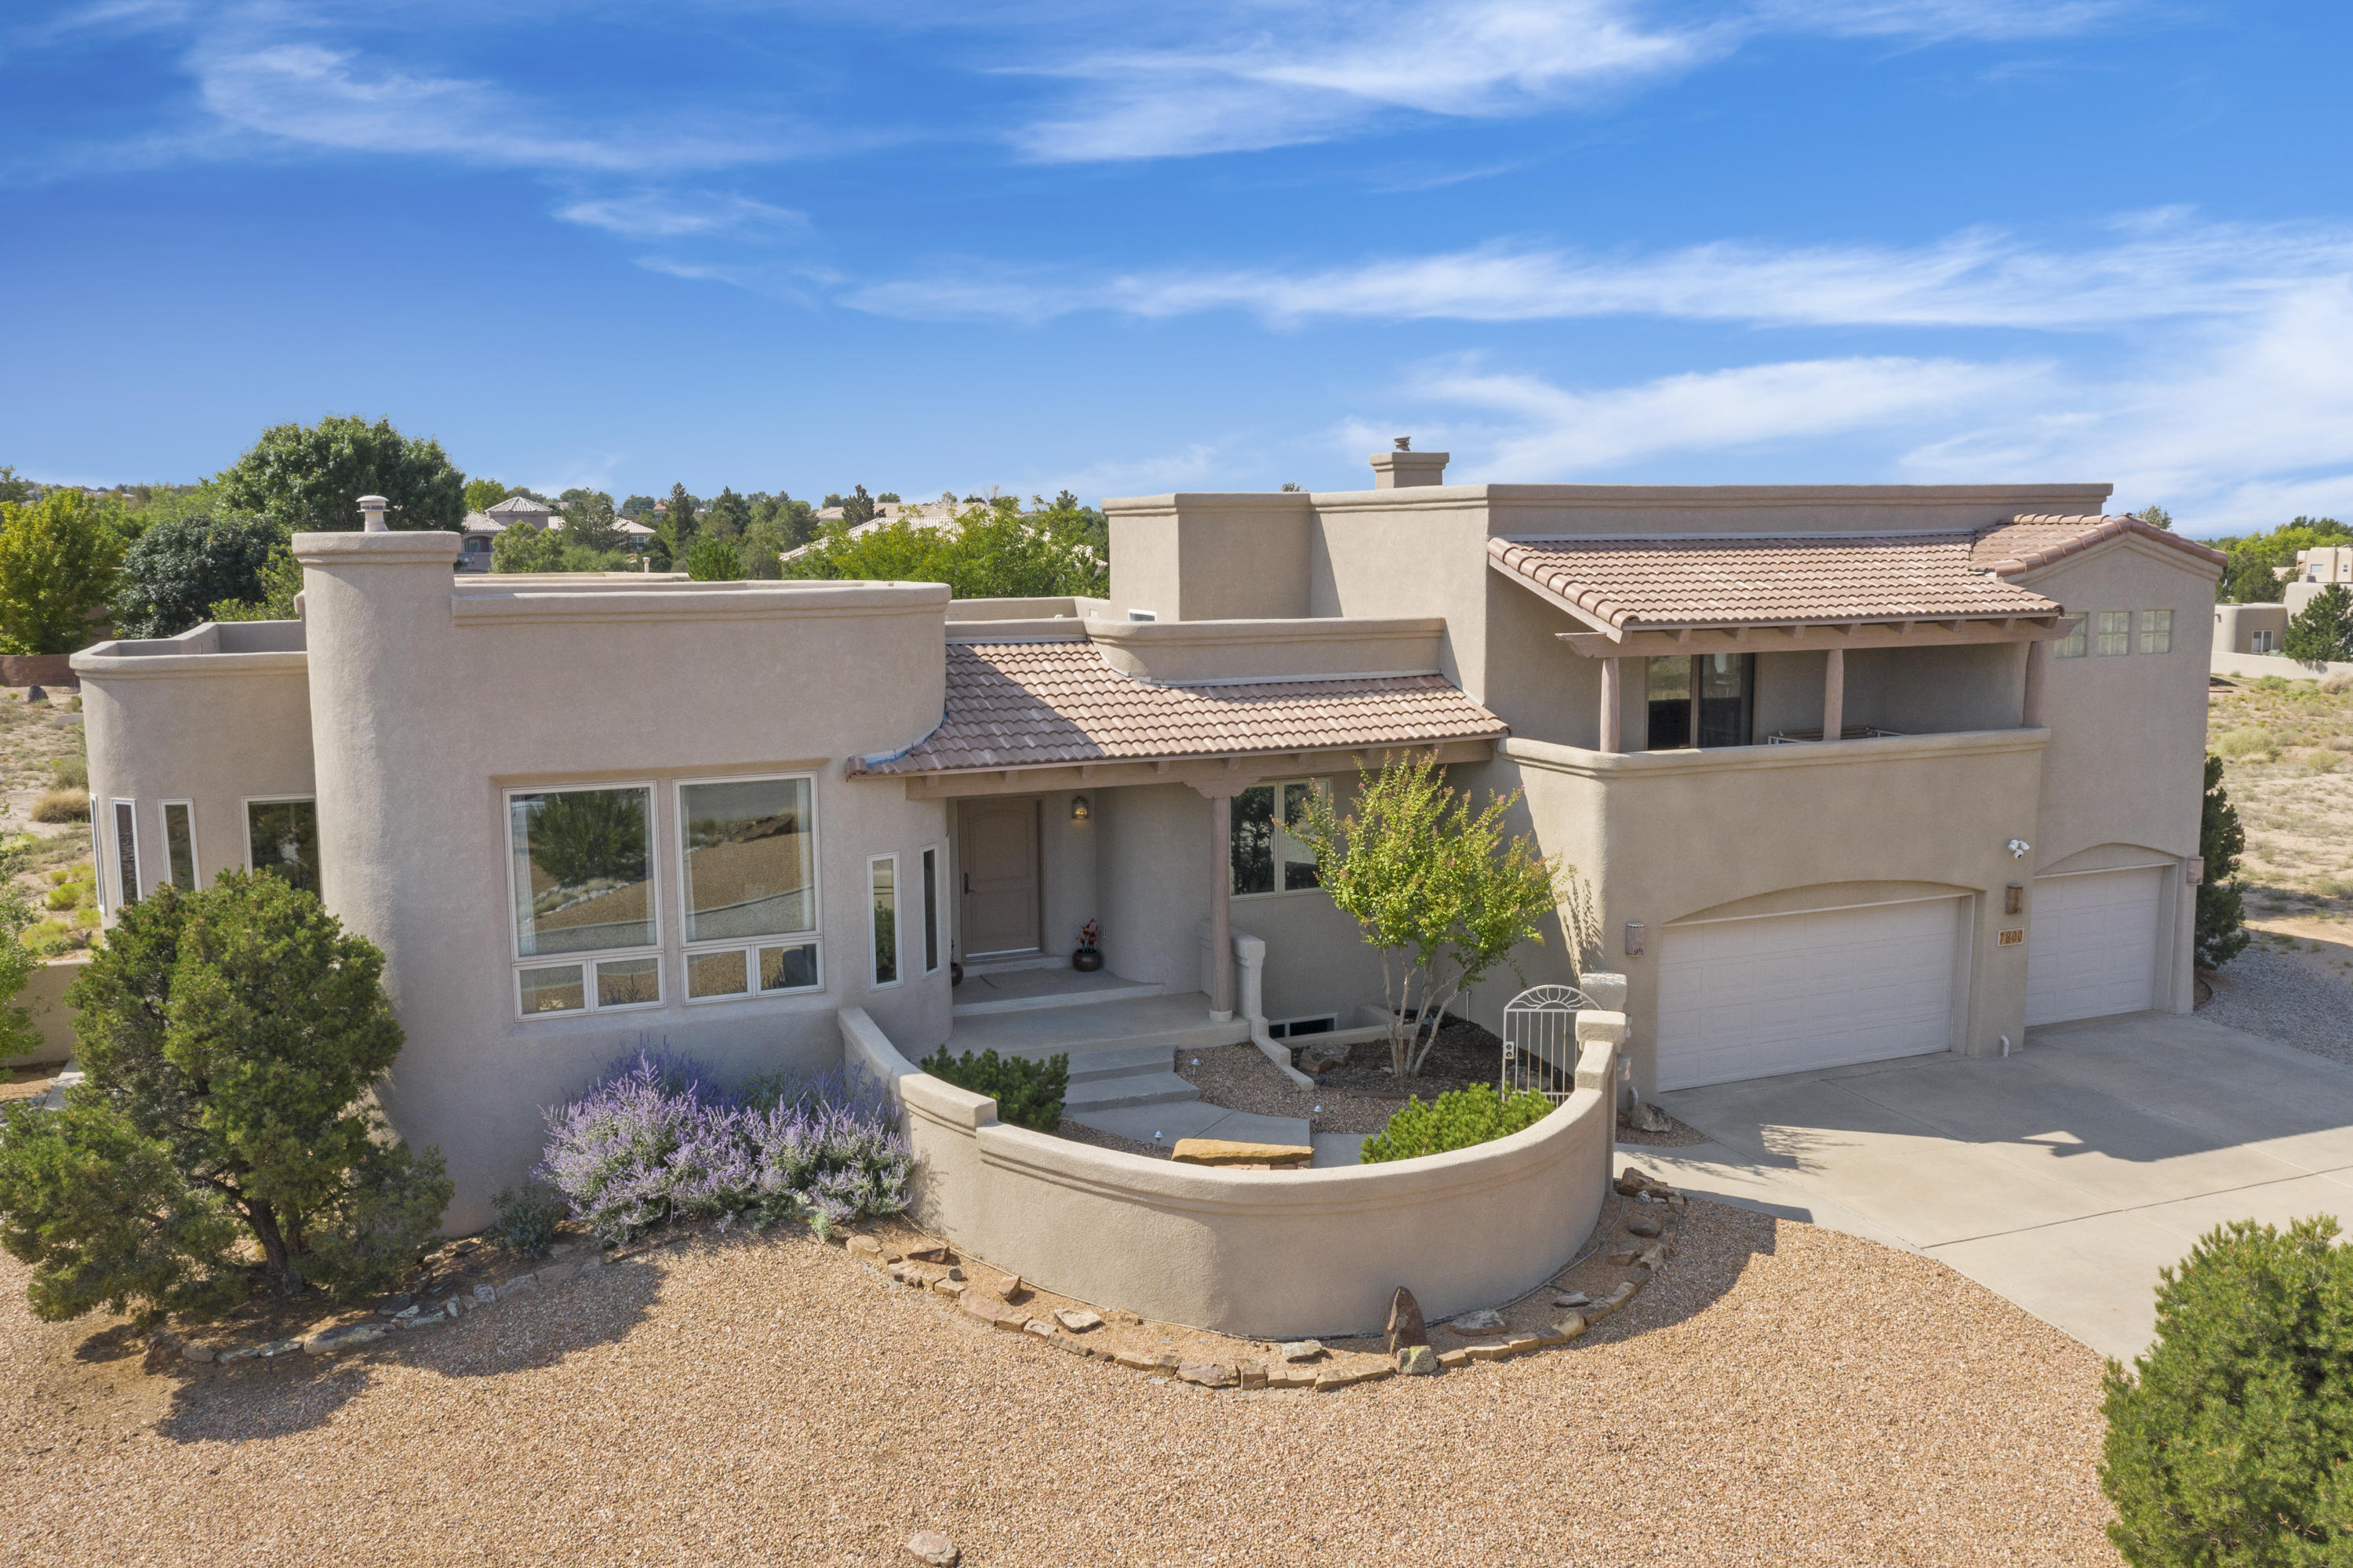 Incredible Sandia Mtn views, enjoy colorful sunrises, sunsets & Balloon Fiesta! Casual elegance abounds in this 4BDR/4BA/3CG custom home.  Great room w/kiva fireplace, soaring ceilings & windows showcasing stunning mtn views! Gourmet kitchen w/beautiful cabinetry, solid surface countertops, island & sunny bkfst nook w/views!  Private master suite w/dual sink vanity, jetted tub, sep shower, walk-in closet & balcony to enjoy your morning coffee & relax at sunset. Huge lower level living space w/great room, 2-way fireplace, game room, wet bar to entertain family & friends! Circular drive, front courtyard, amazing outdoor living space w/covered patio, wood burning fireplace, built-in grill, grass, trees & garden area!  3CG has storage, 50 amp for elec car, 220,built-in workspace.